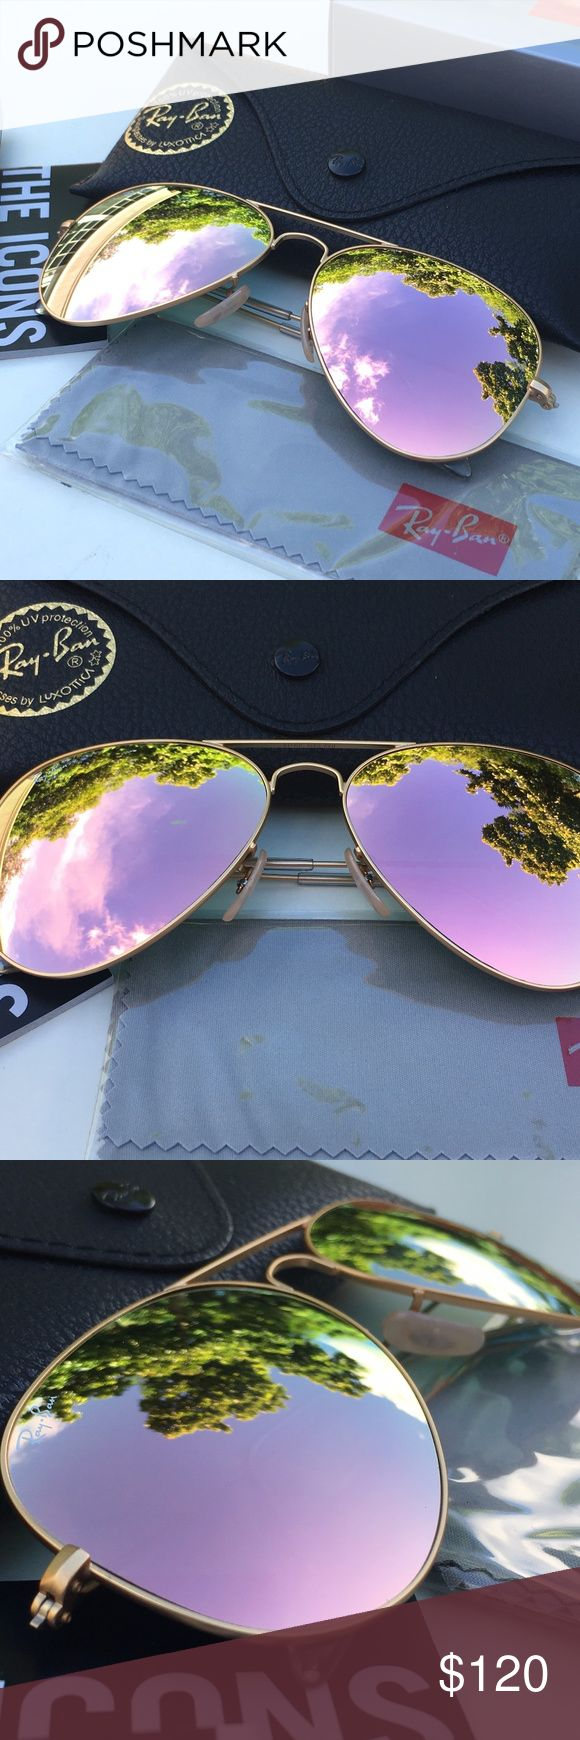 RAY-BAN AVIATOR Sunglasses - Rose Gold/Gold Frame 100% AUTHENTIC & BRAND NEW  Original RAY-BAN AVIATOR Sunglasses Rose Gold/Gold Frame Model: RB3025 - 001/Z2  (58mm & 62mm)   -----------------------------------------------------------------   Product Description: Brand: Ray-Ban (100% Authentic) Lens Color: Gold Rose Frame Color: Gold Model: RB3025 Color Code: 001/Z2 Size: 58-62mm/14/3N Gender: Unisex Made: Italy  Package Includes:  - Ray-Ban Outer Paper Box - Ray-Ban Carrying Case - Ray-Ban…